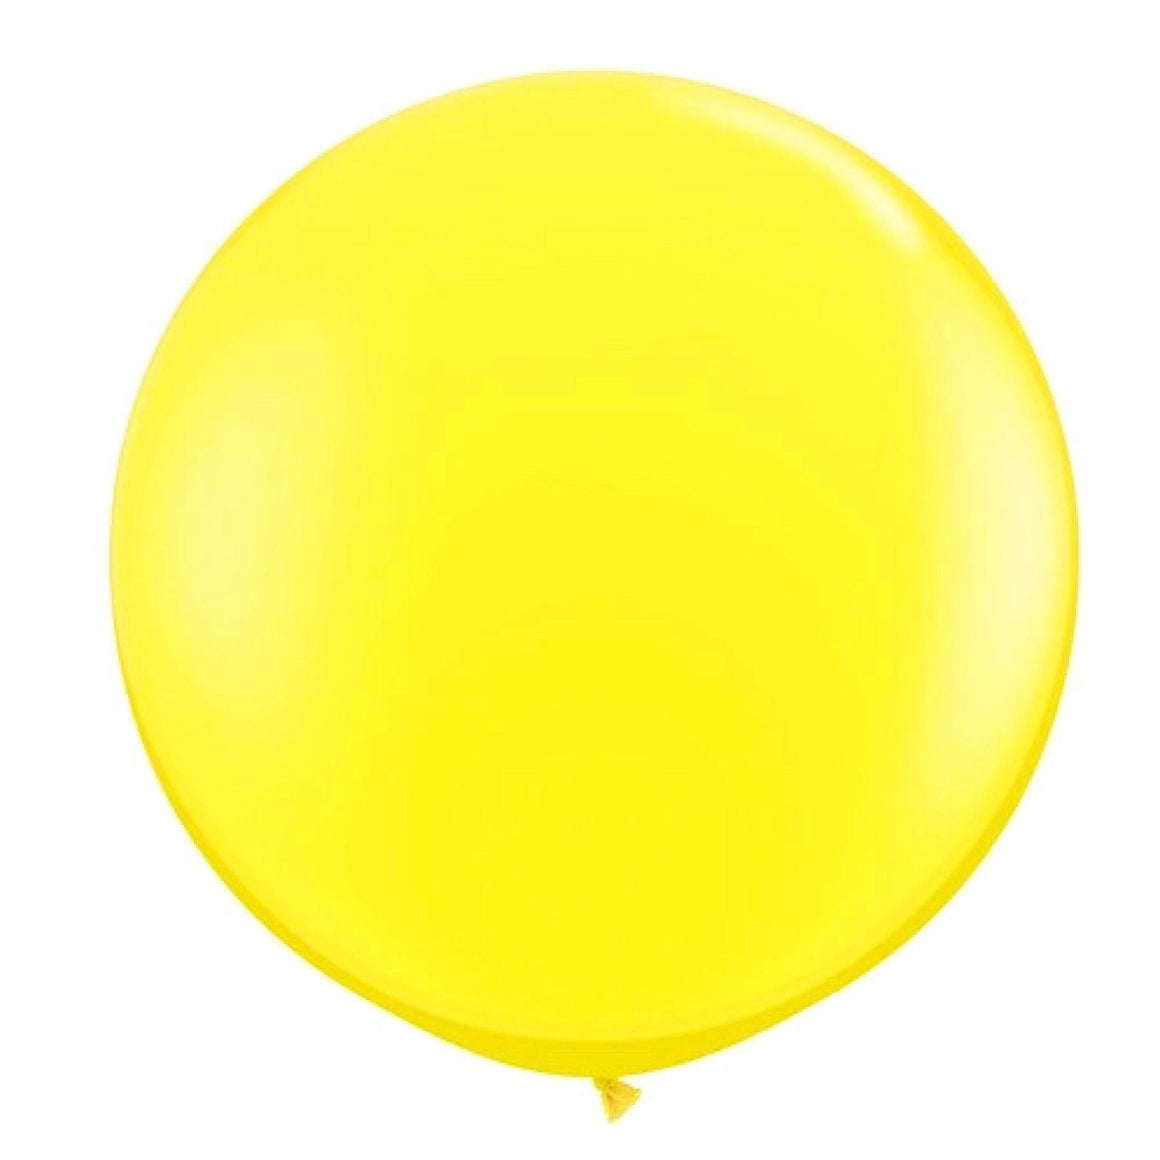 "BALLOON BAR - 36"" JUMBO ROUND BRIGHT YELLOW"